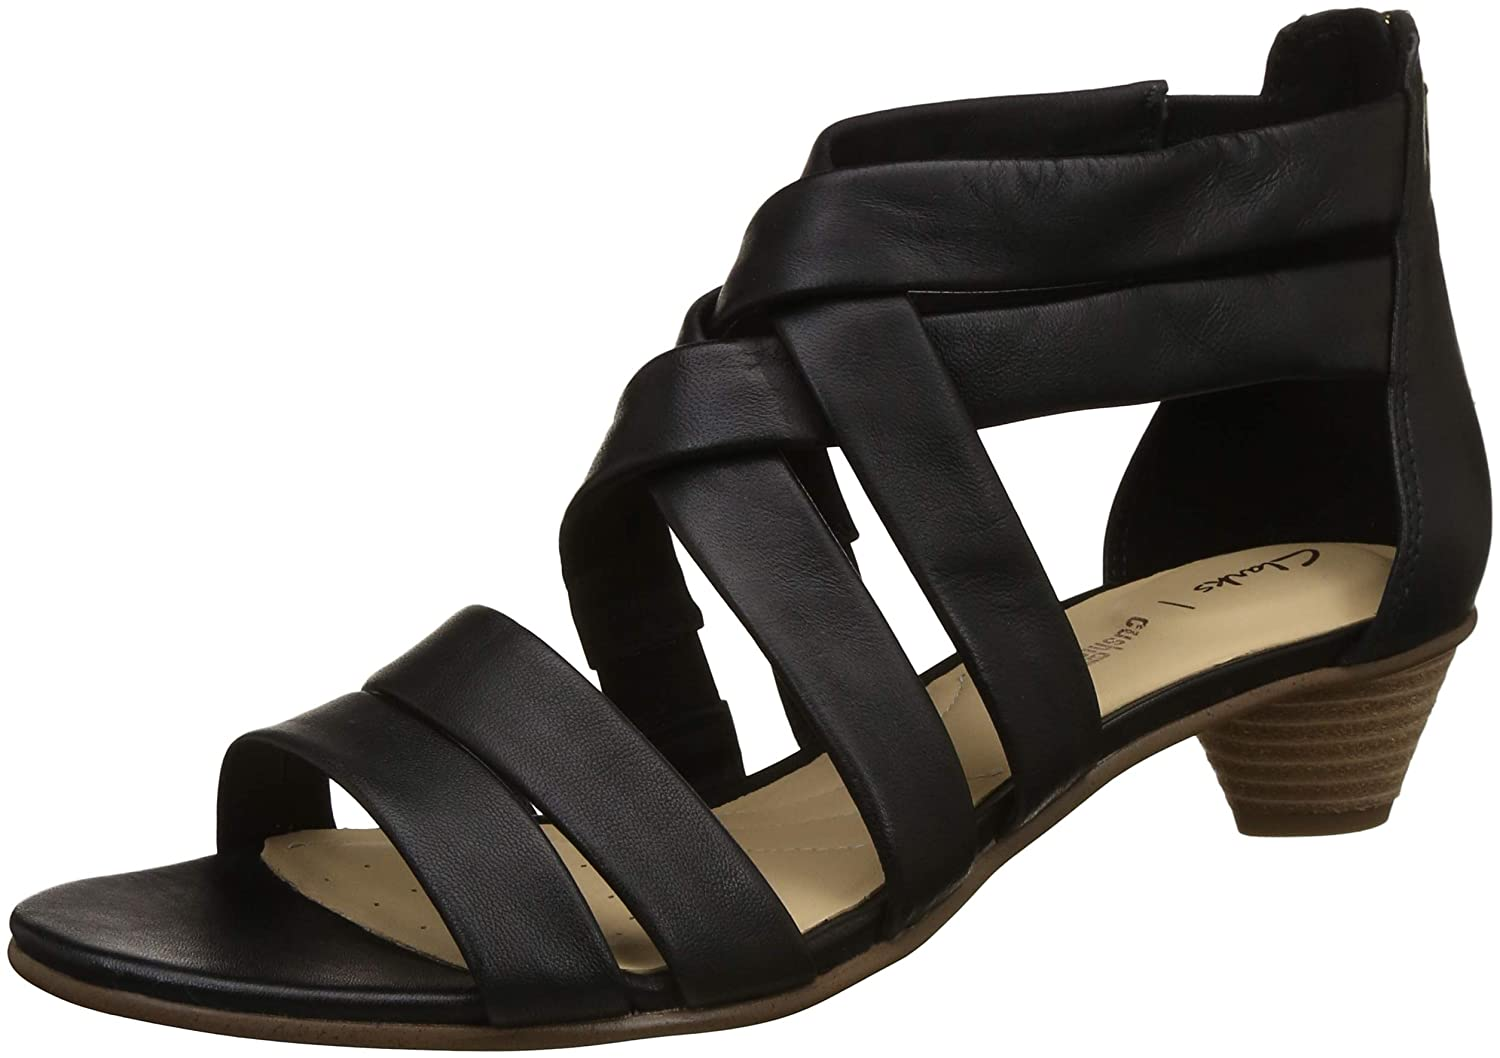 32475702c2d Clarks MENA Silk Leather Sandals in Black  Amazon.co.uk  Shoes   Bags